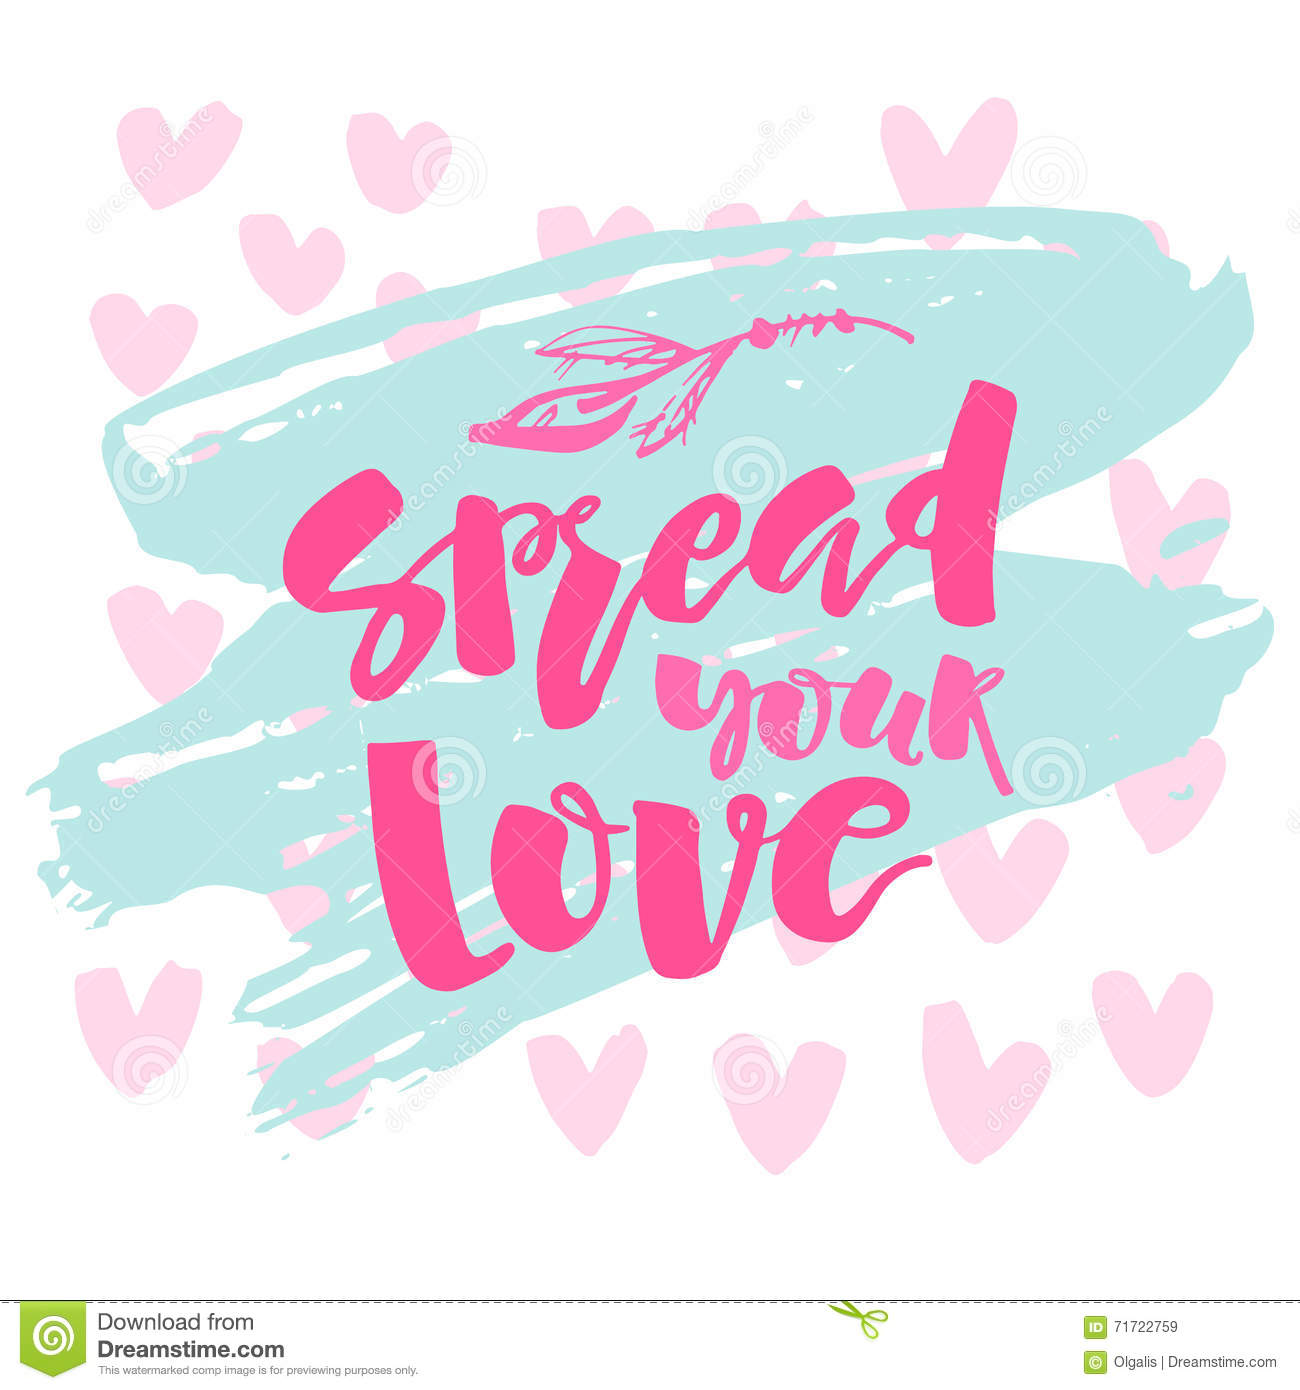 Love and charity concept hand lettering motivation poster stock love and charity concept hand lettering motivation poster graciousness graffiti kristyandbryce Choice Image